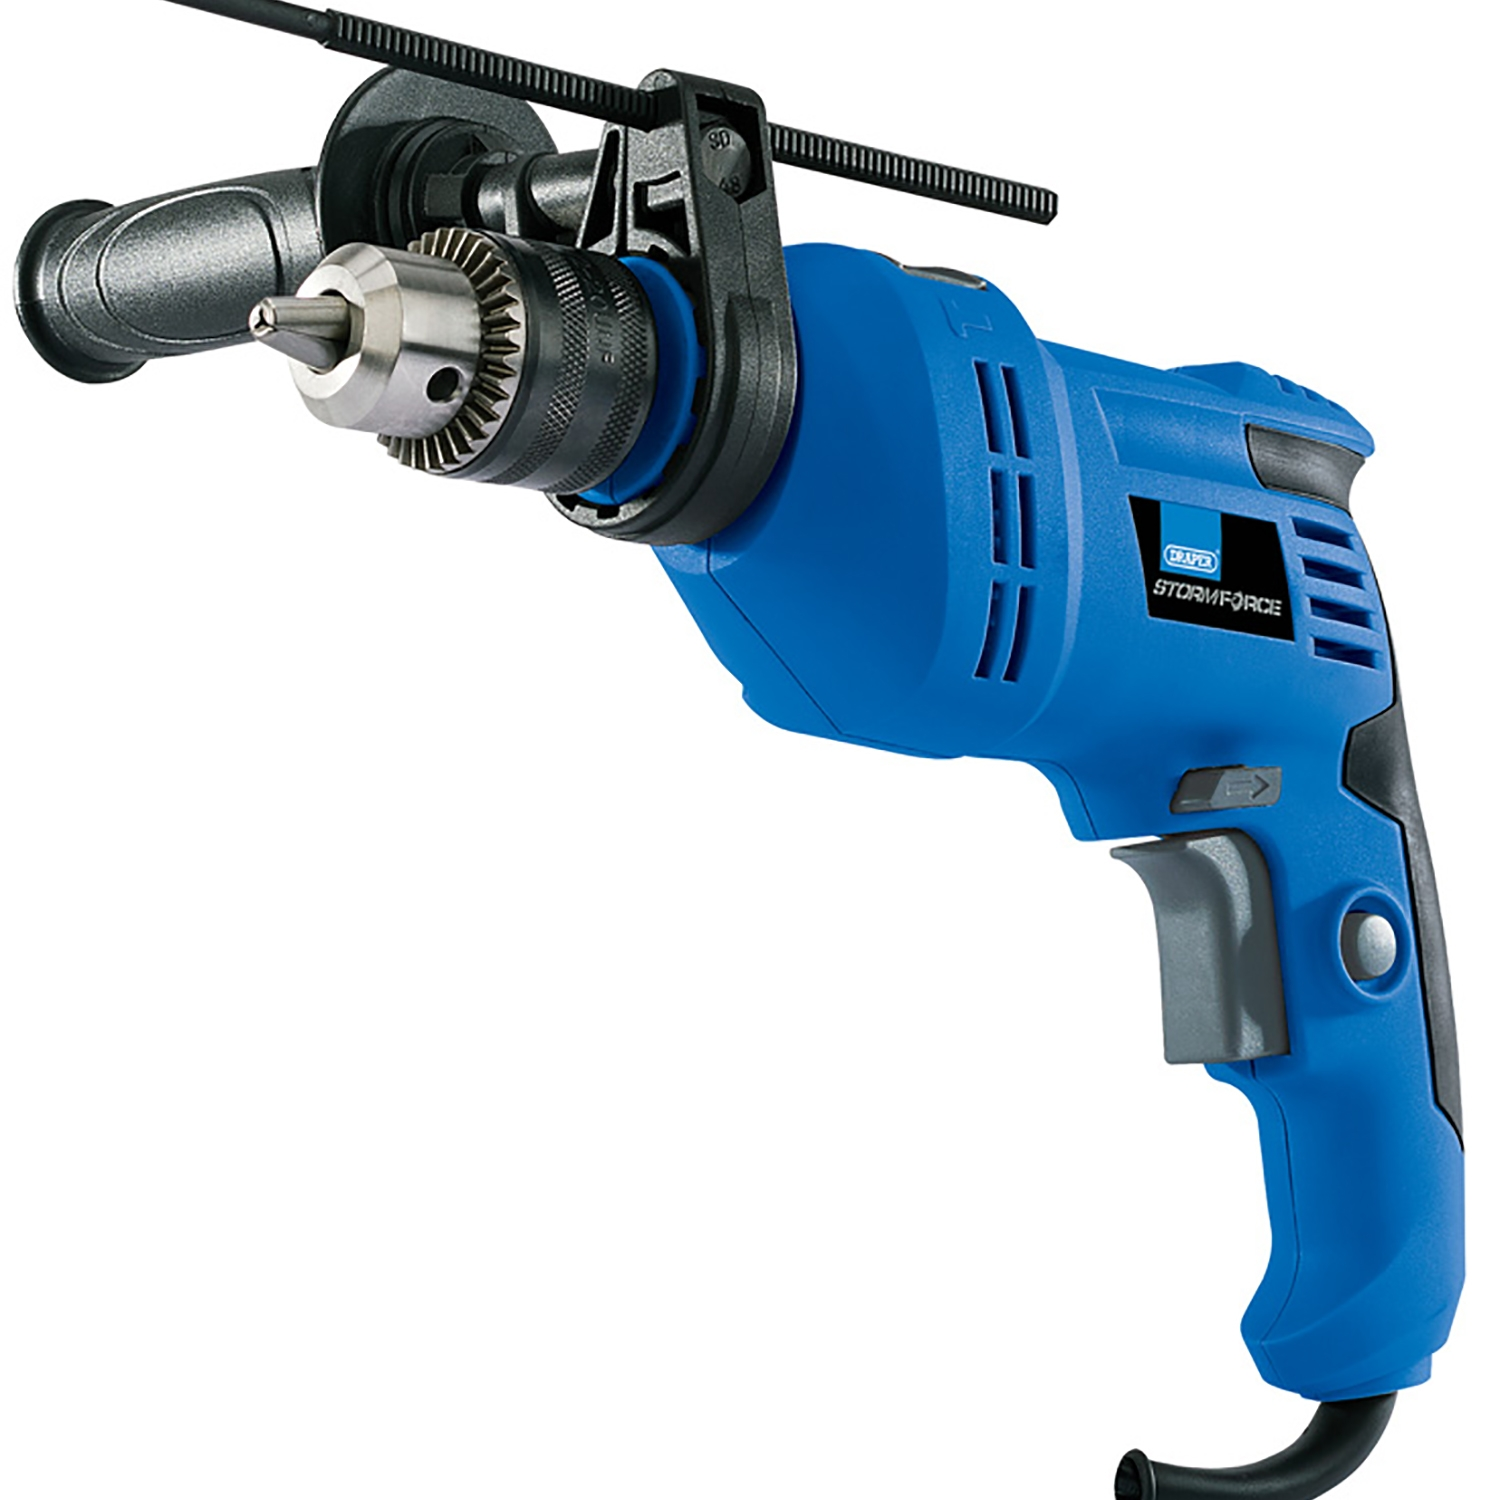 Image of Draper Storm Force Impact Drill 550w